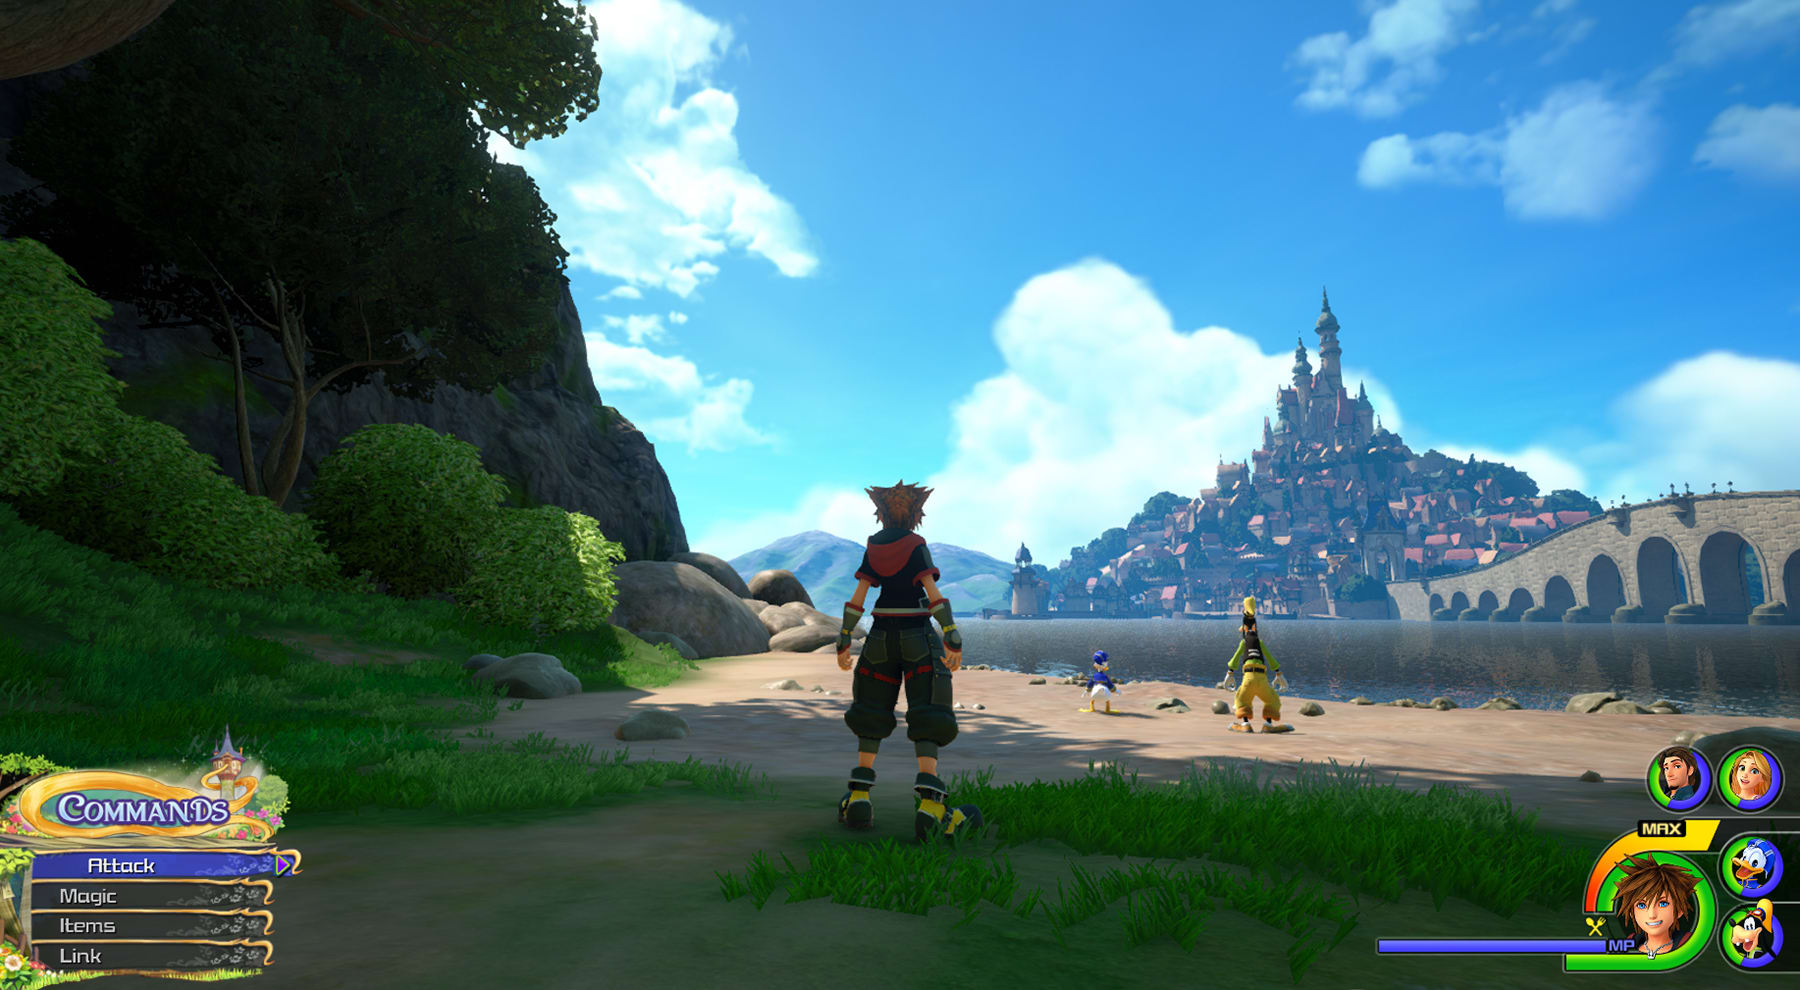 'Kingdom Hearts 3' brings you closer than ever to Disney's worlds